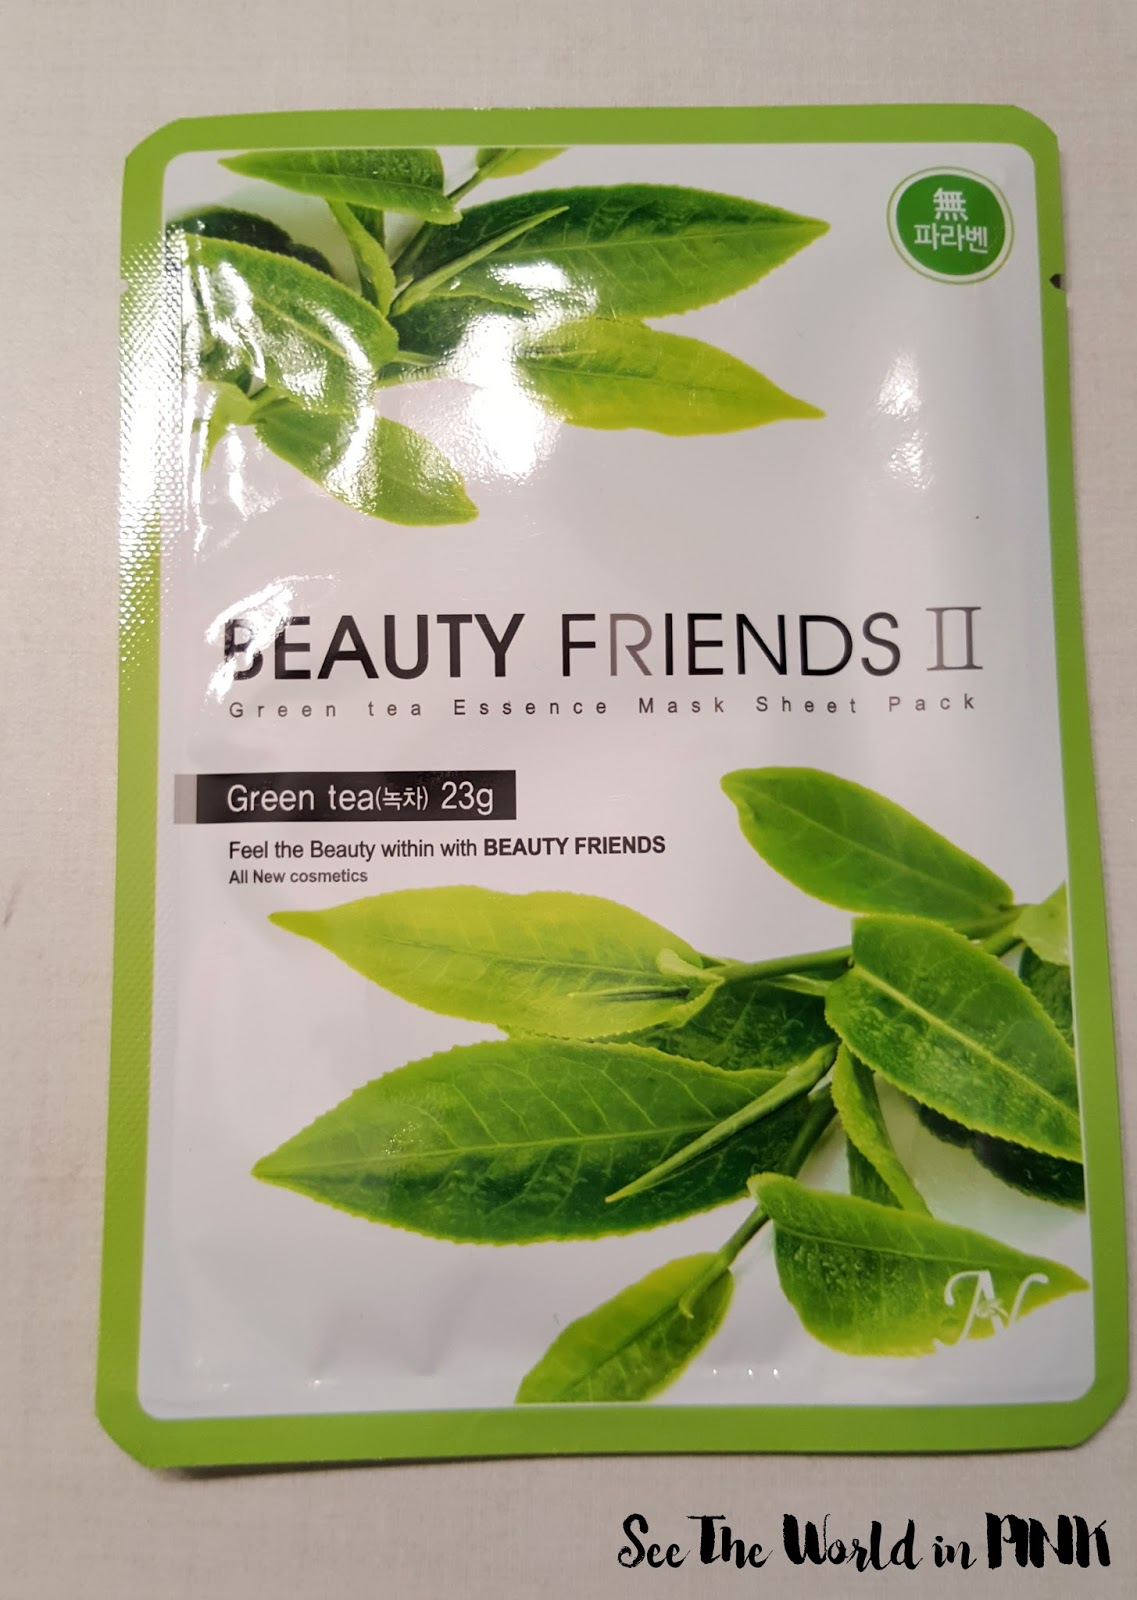 Beauty Friends II Essence Mask Sheet Pack (Green Tea)